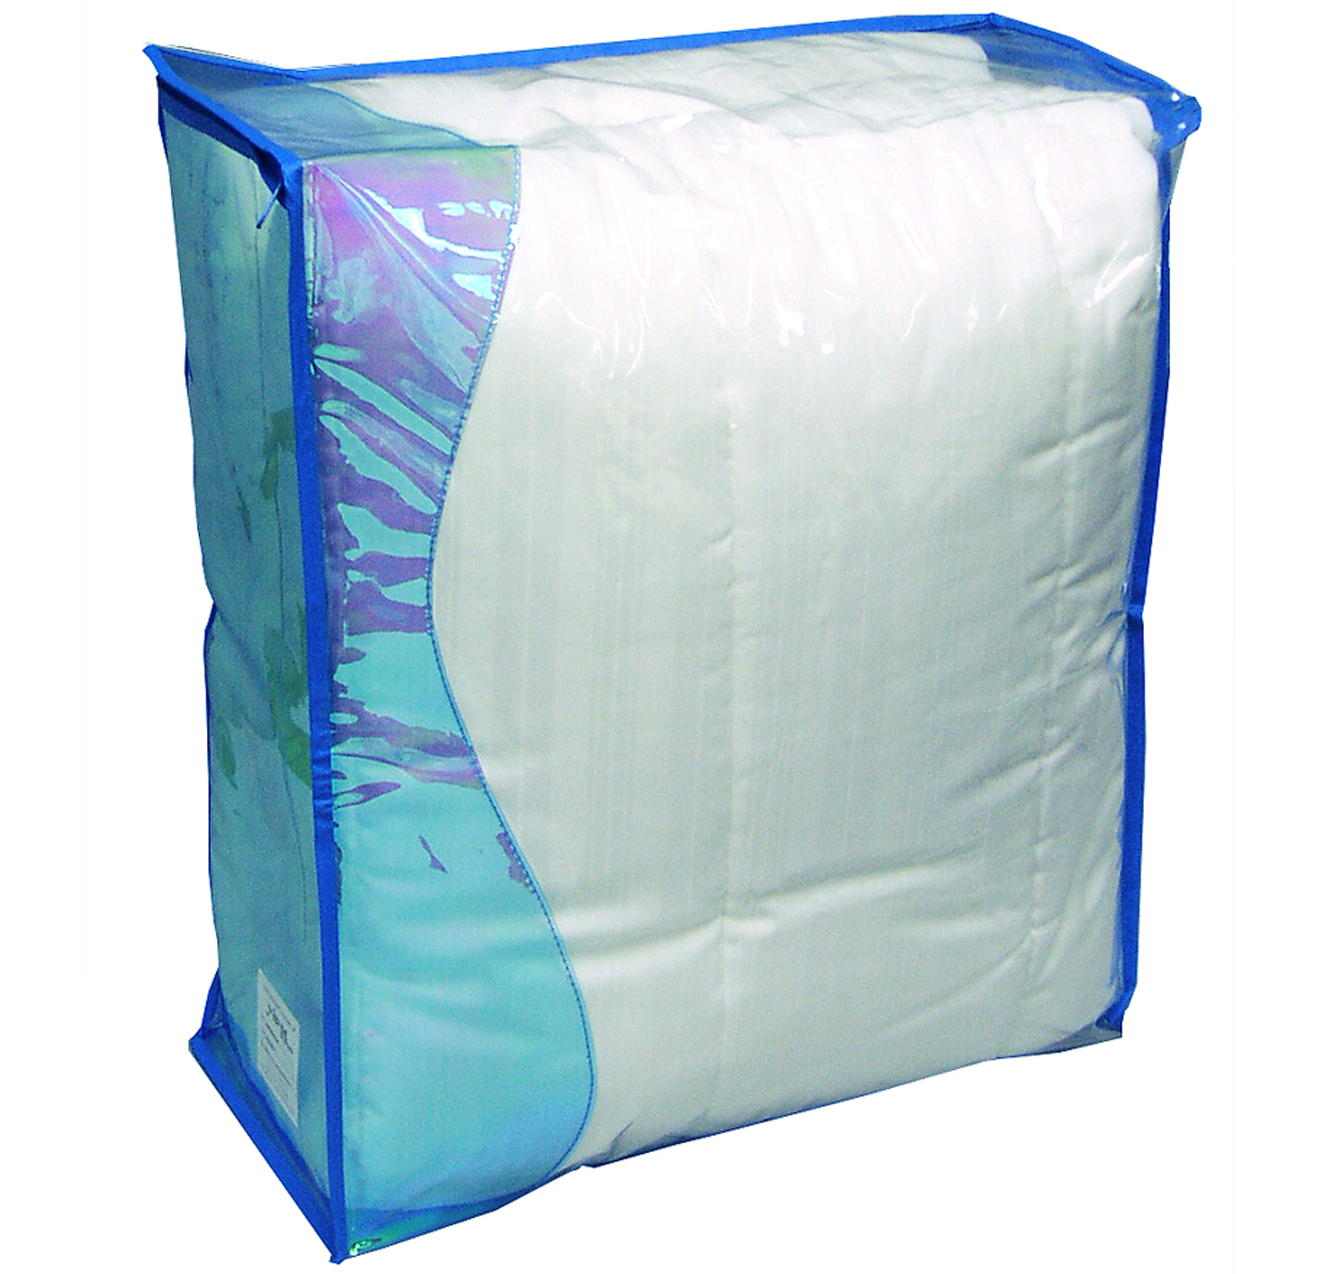 Vinyle Pvc Custom Vinyl Blanket Throw Bags Vipac World Leader In Vinyl Bags